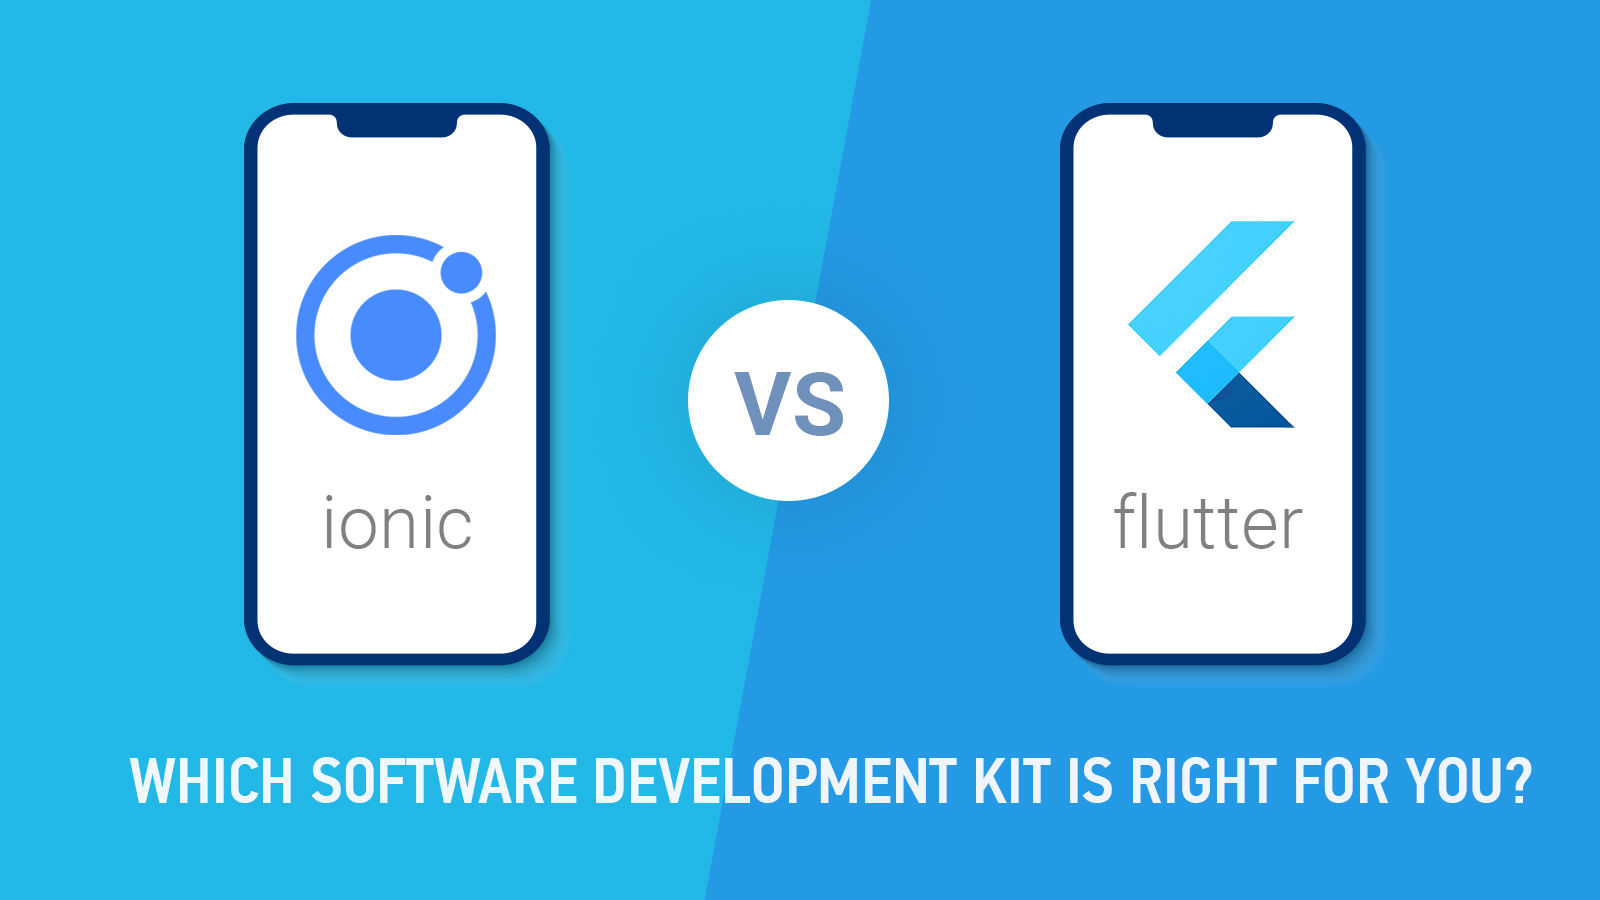 Ionic vs. Flutter: Which Software Development Kit is Right for You?